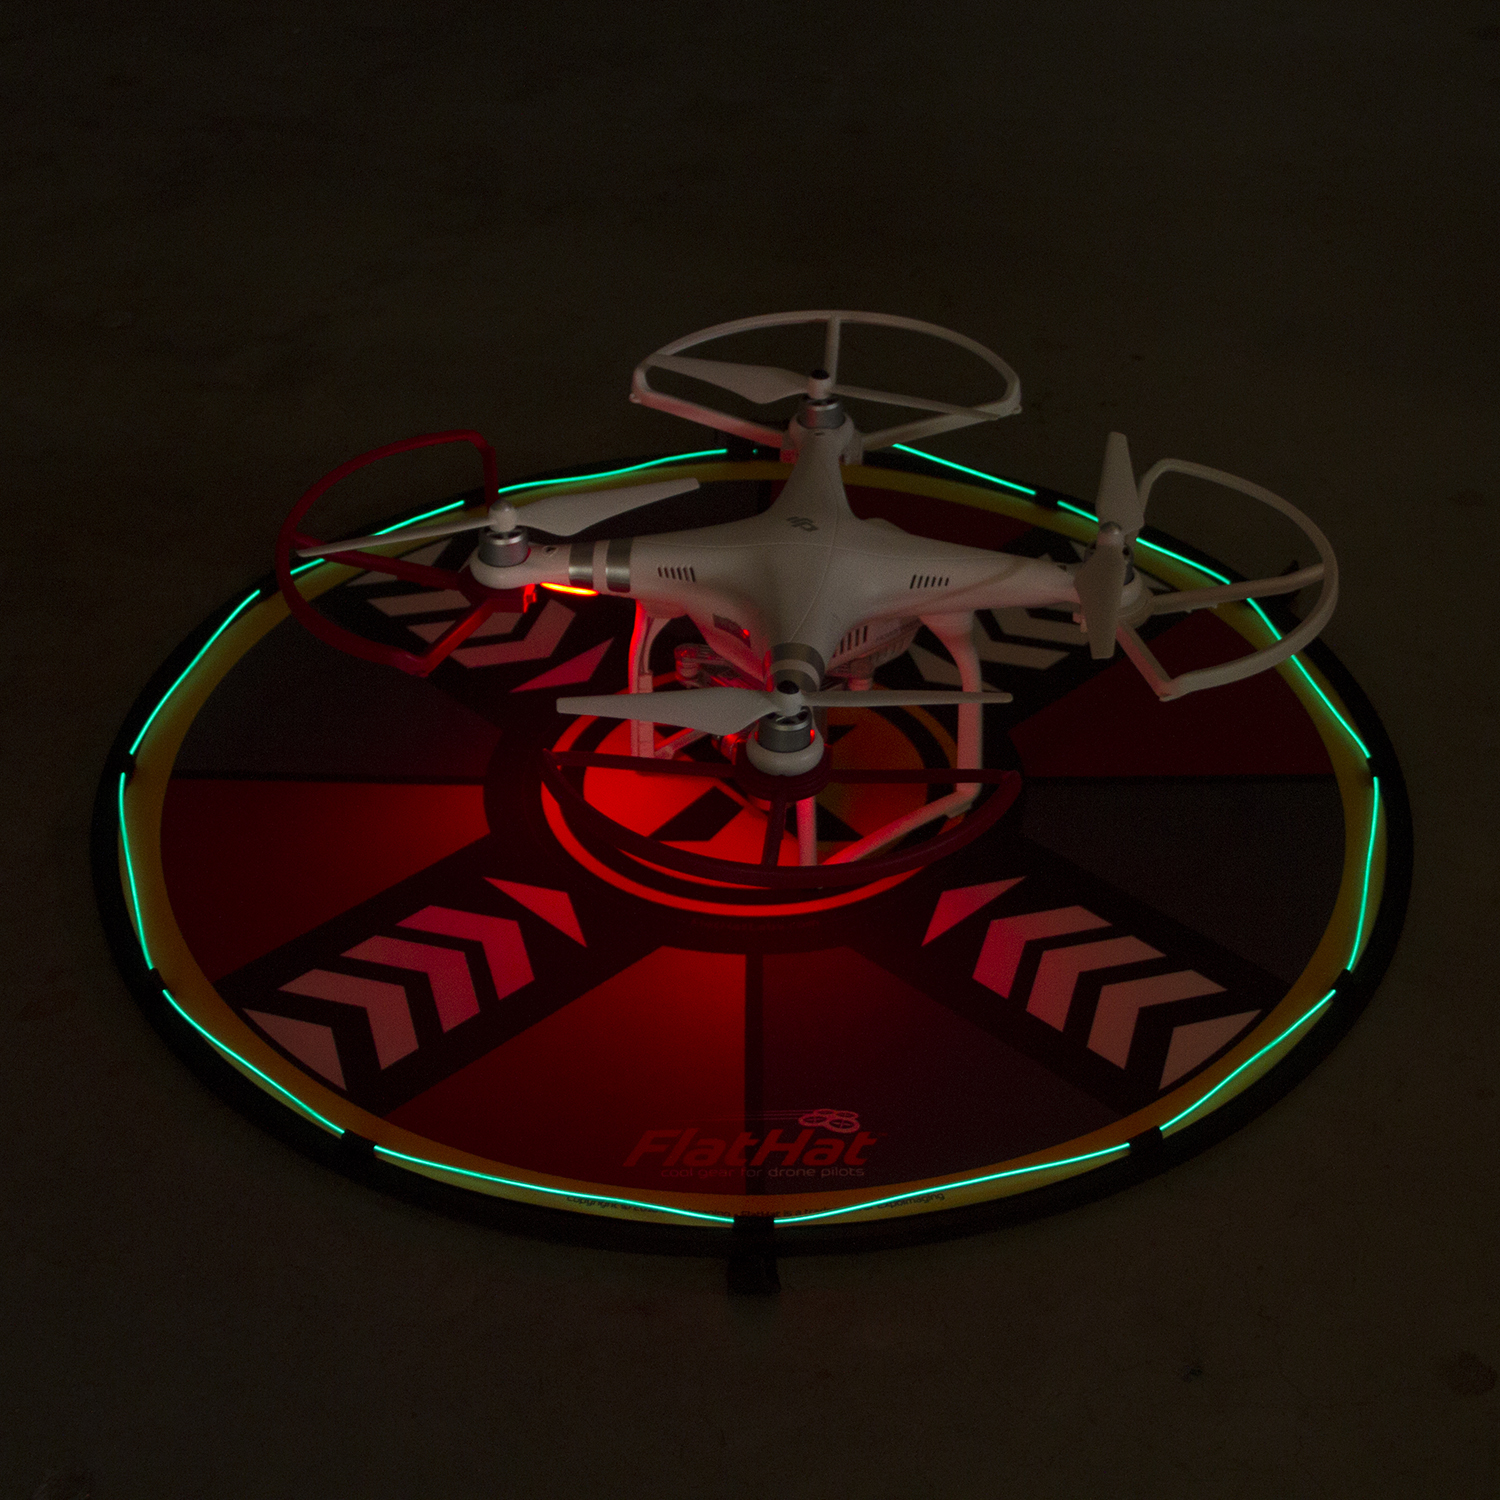 dji-on-80cm-with-lighting-kit-1500x FlatHat Introduces Collapsible Drone Pads, Lighting Kits